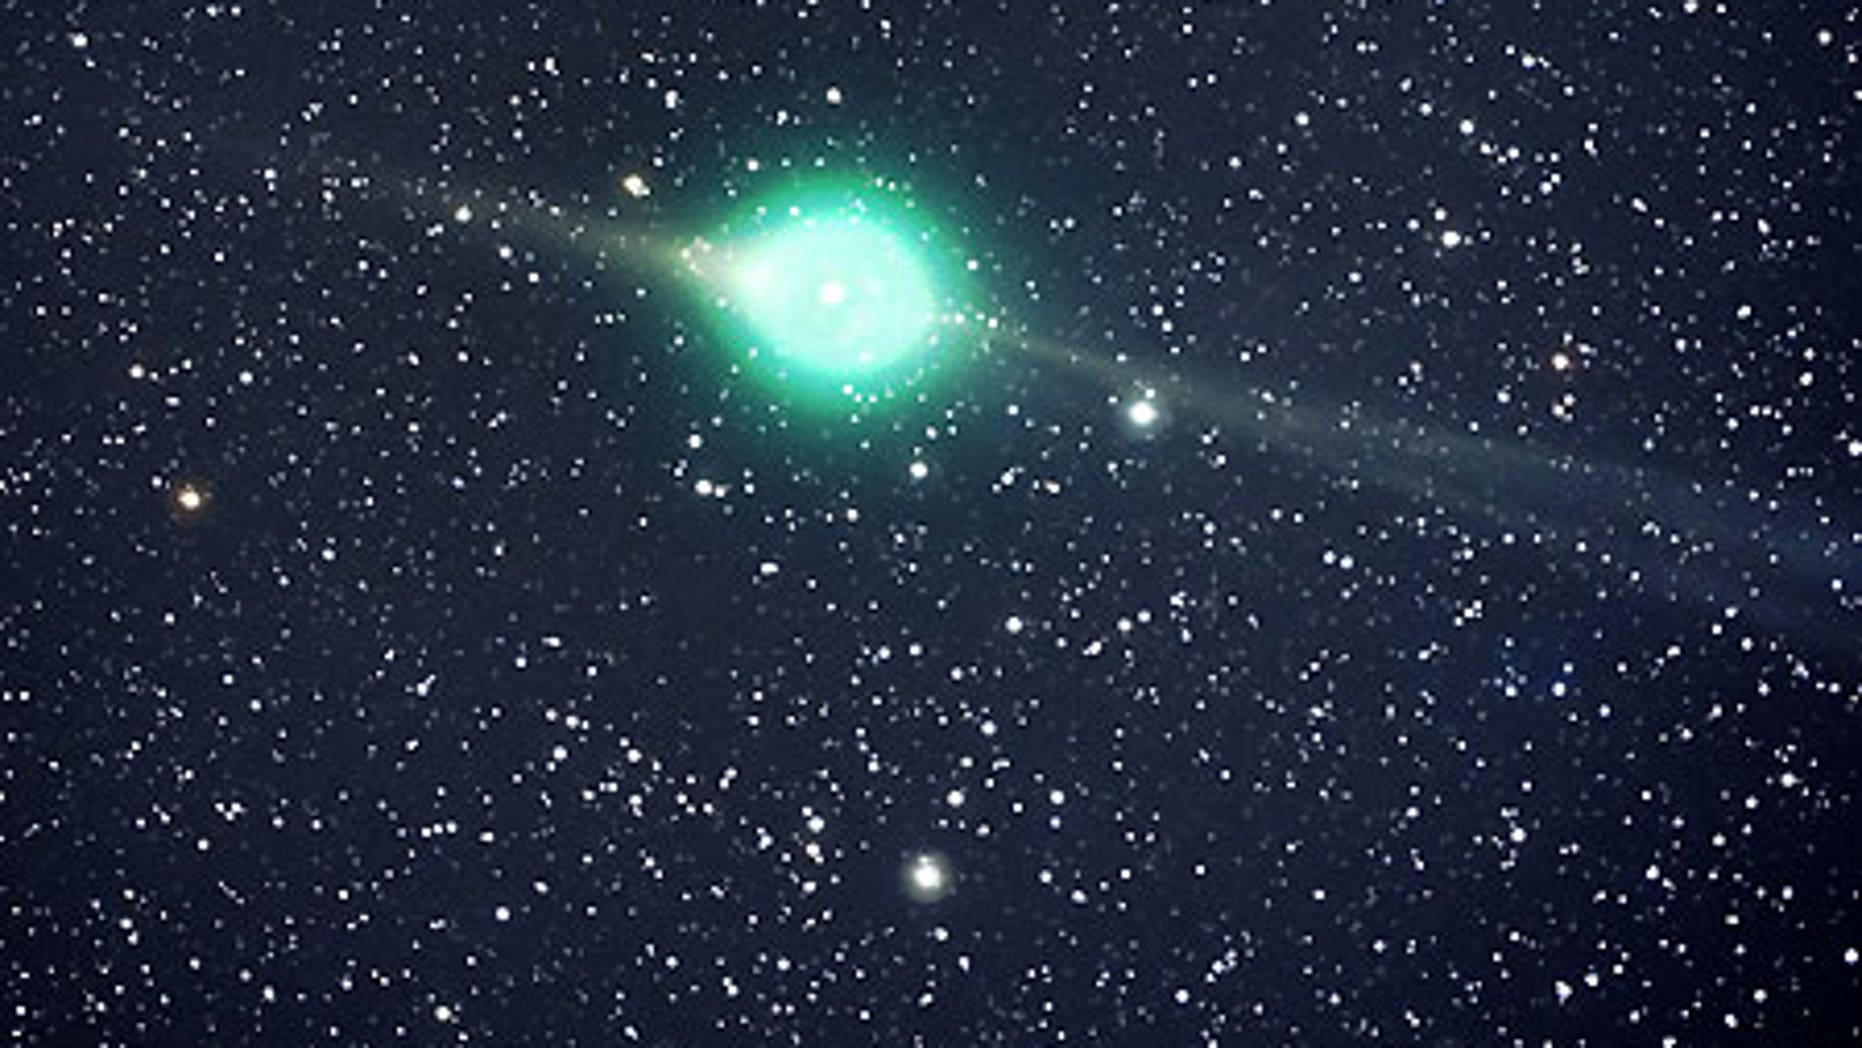 Feb. 1: Comet Lulin as photographed by amateur astronomer Jack Newton in Arizona.